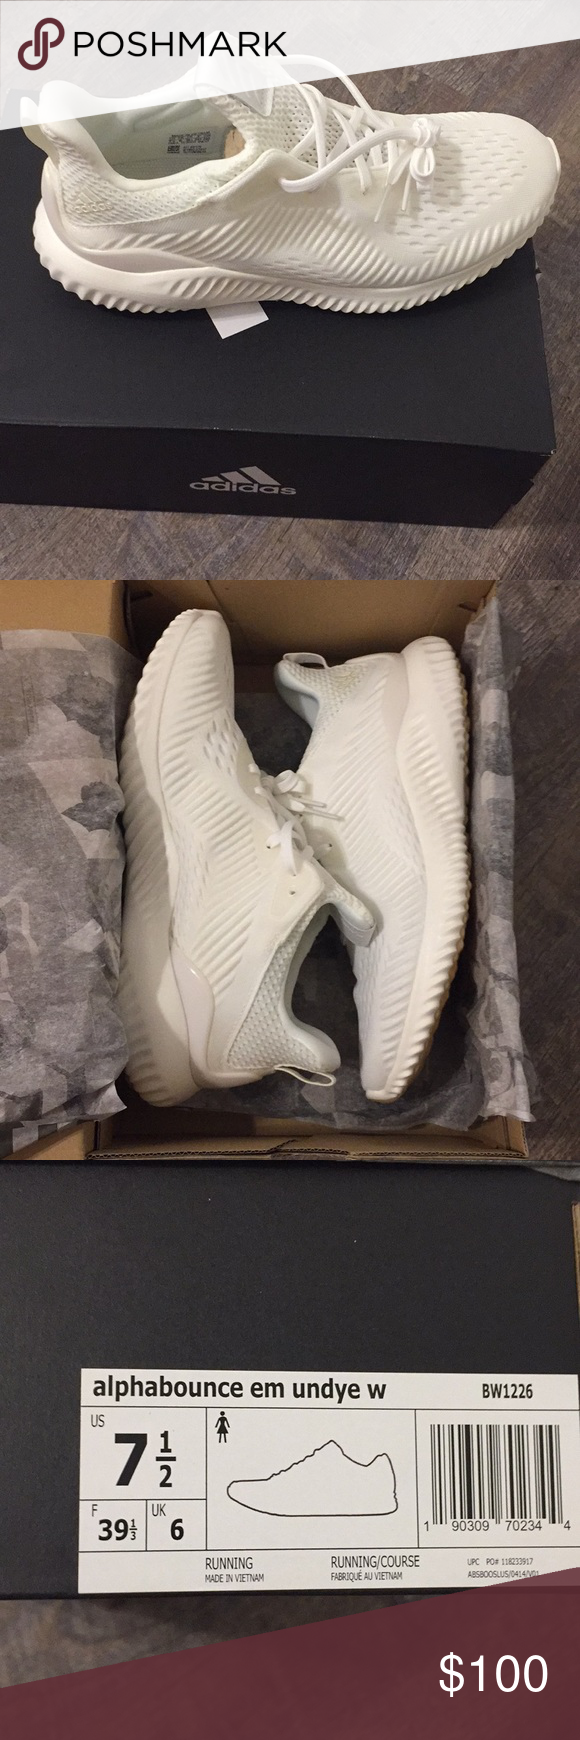 b6f625b8eaacf Adidas Alphabounce EM Undye Shoes Completely unworn. Selling because  they re too big for me so getting the smaller size. adidas Shoes Athletic  Shoes